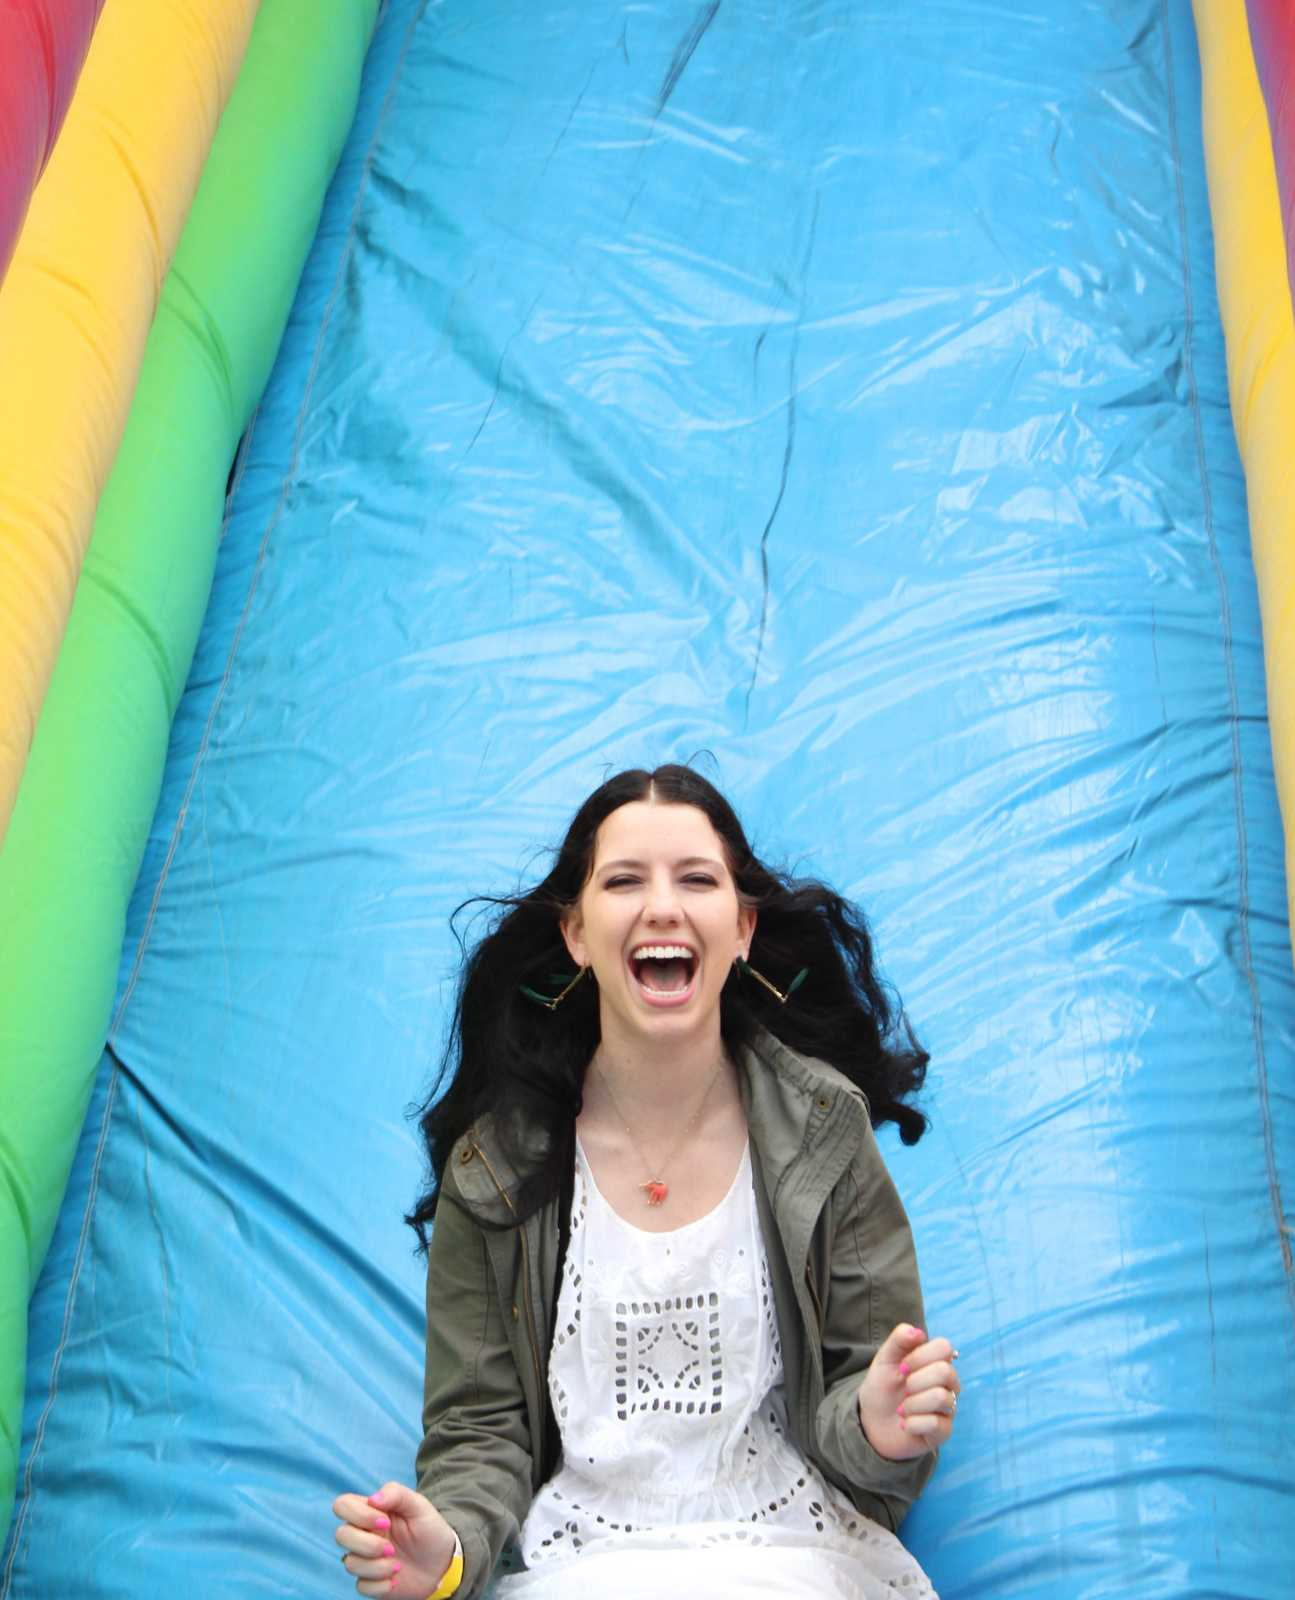 Nicole Santoni, Sophomore, slides down an inflatable slide at the SF State ASI Kick-Off on Wednesday, Sept. 4, 2013. The Kick-Off was carnival themed, having ring toss, cotton candy, inflatable slides and other carnival classics. Photo Ryan Leibrich / Xpress